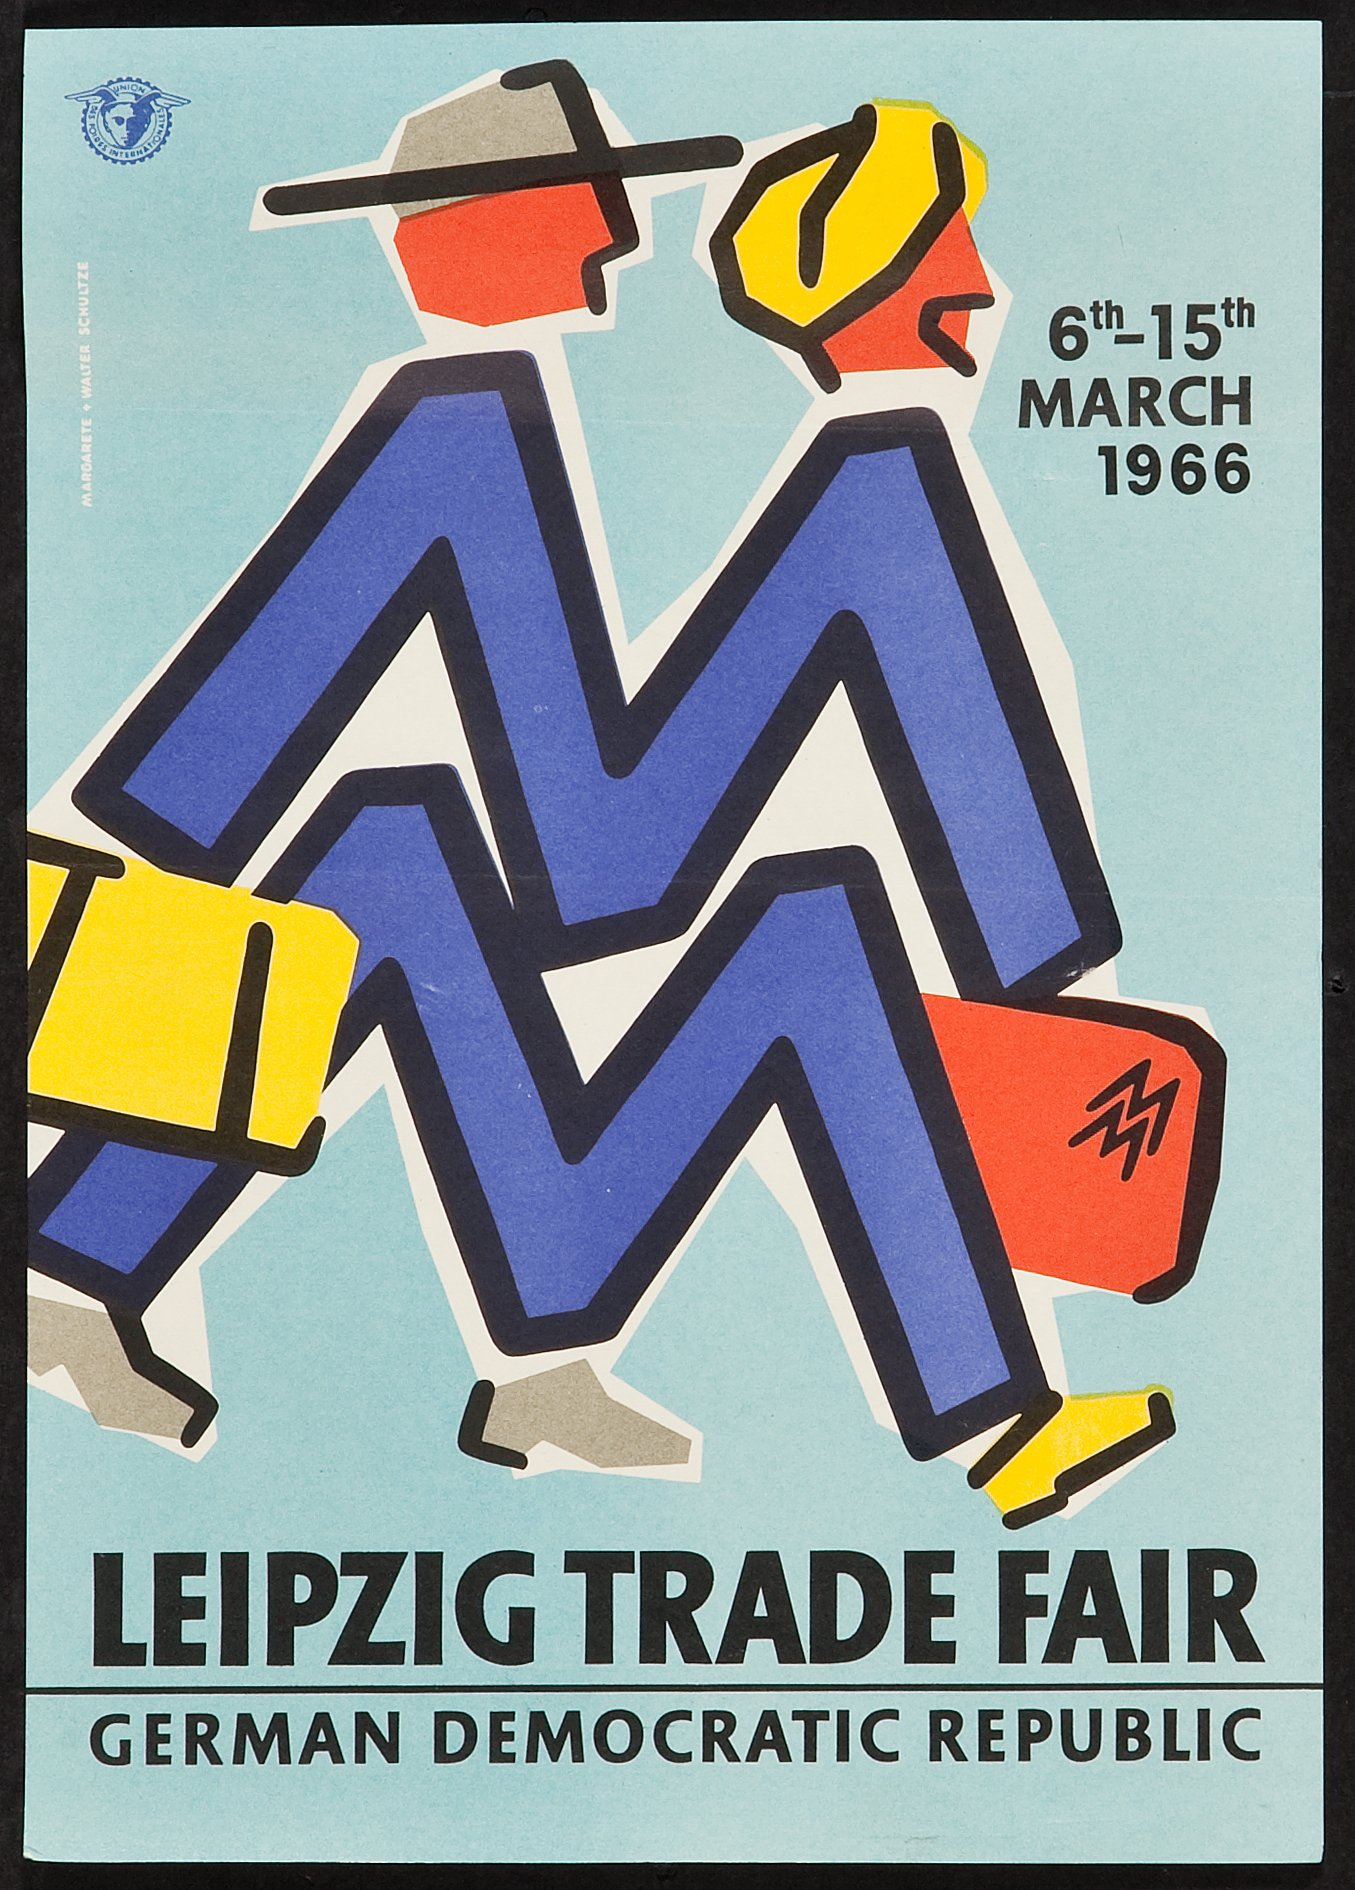 The Leipzig Trade Fair Poster Des Foires Internationales 1966 Lot 54504 Heritage Auctions